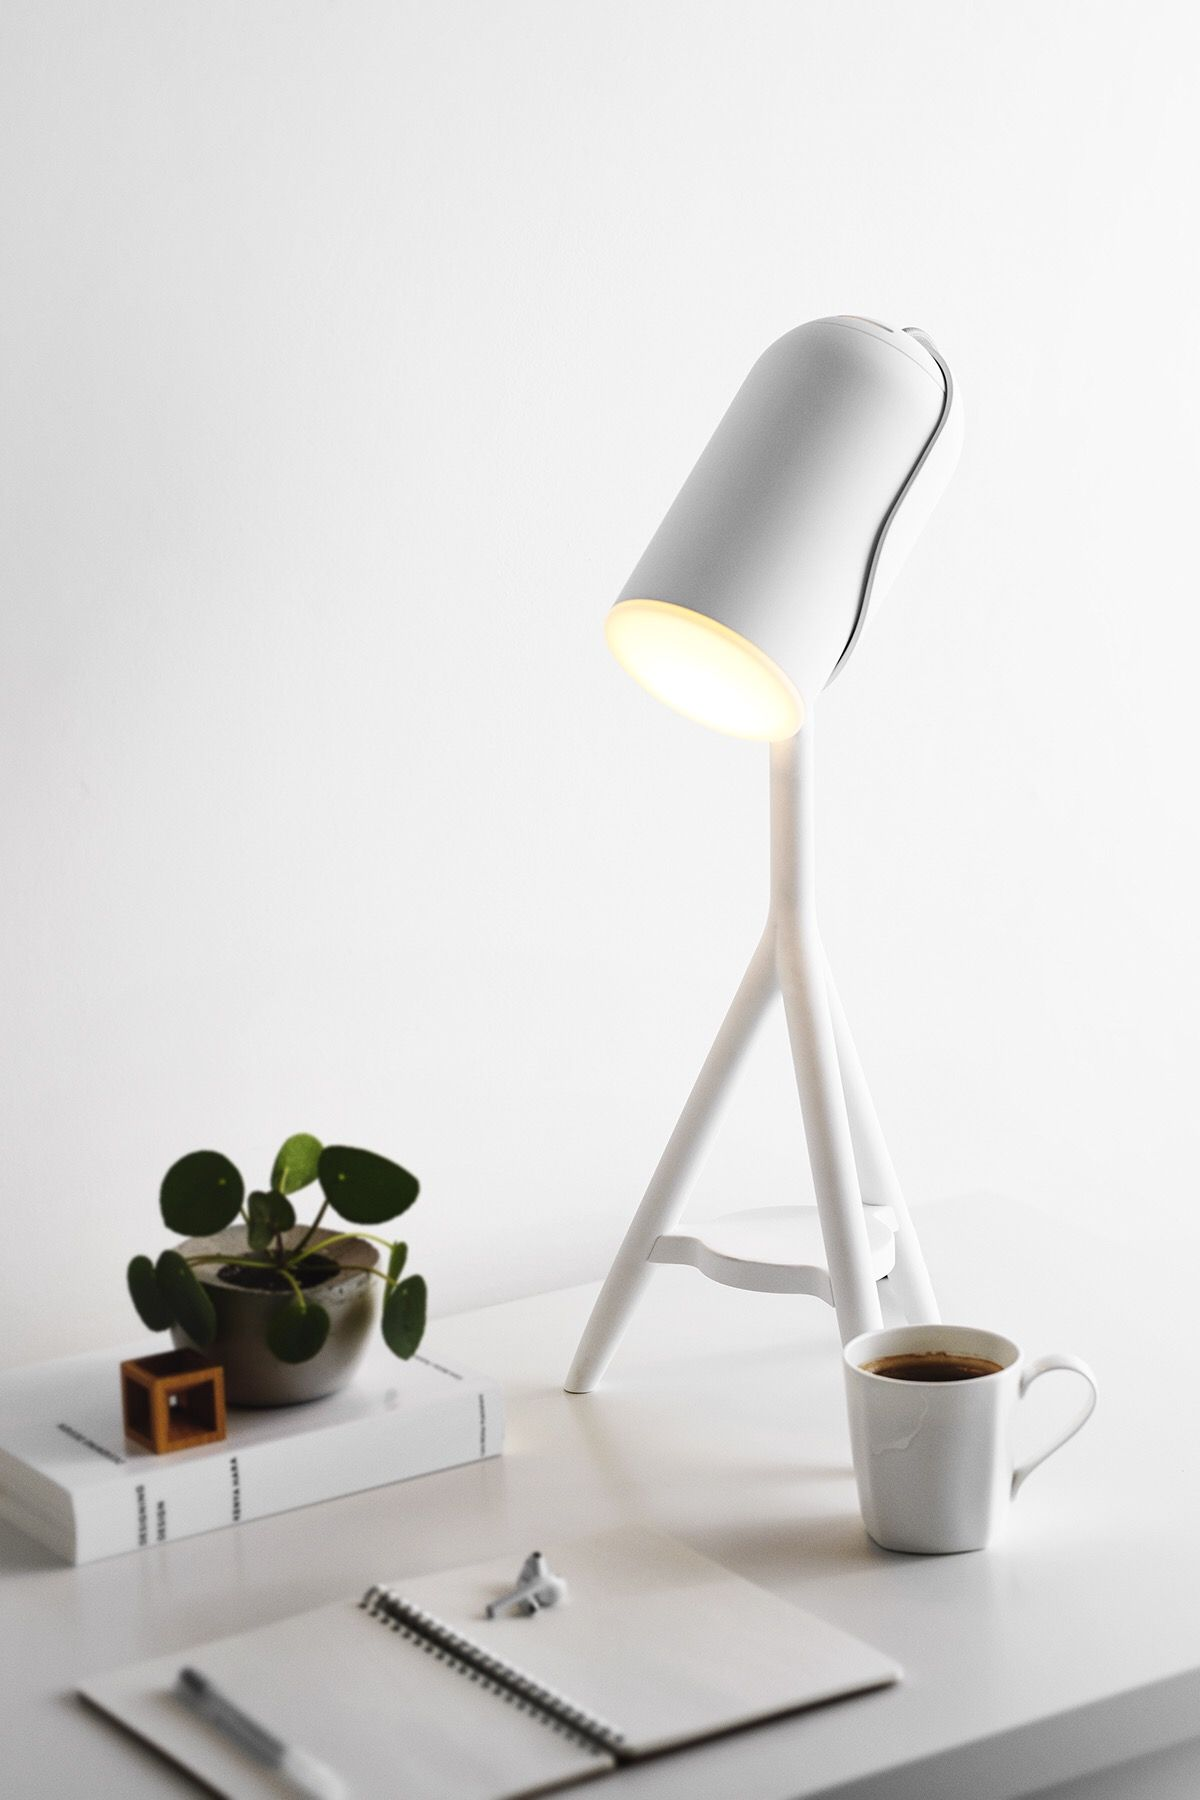 2019的model Tl2 By Gantri A Modern Task Light Lighting